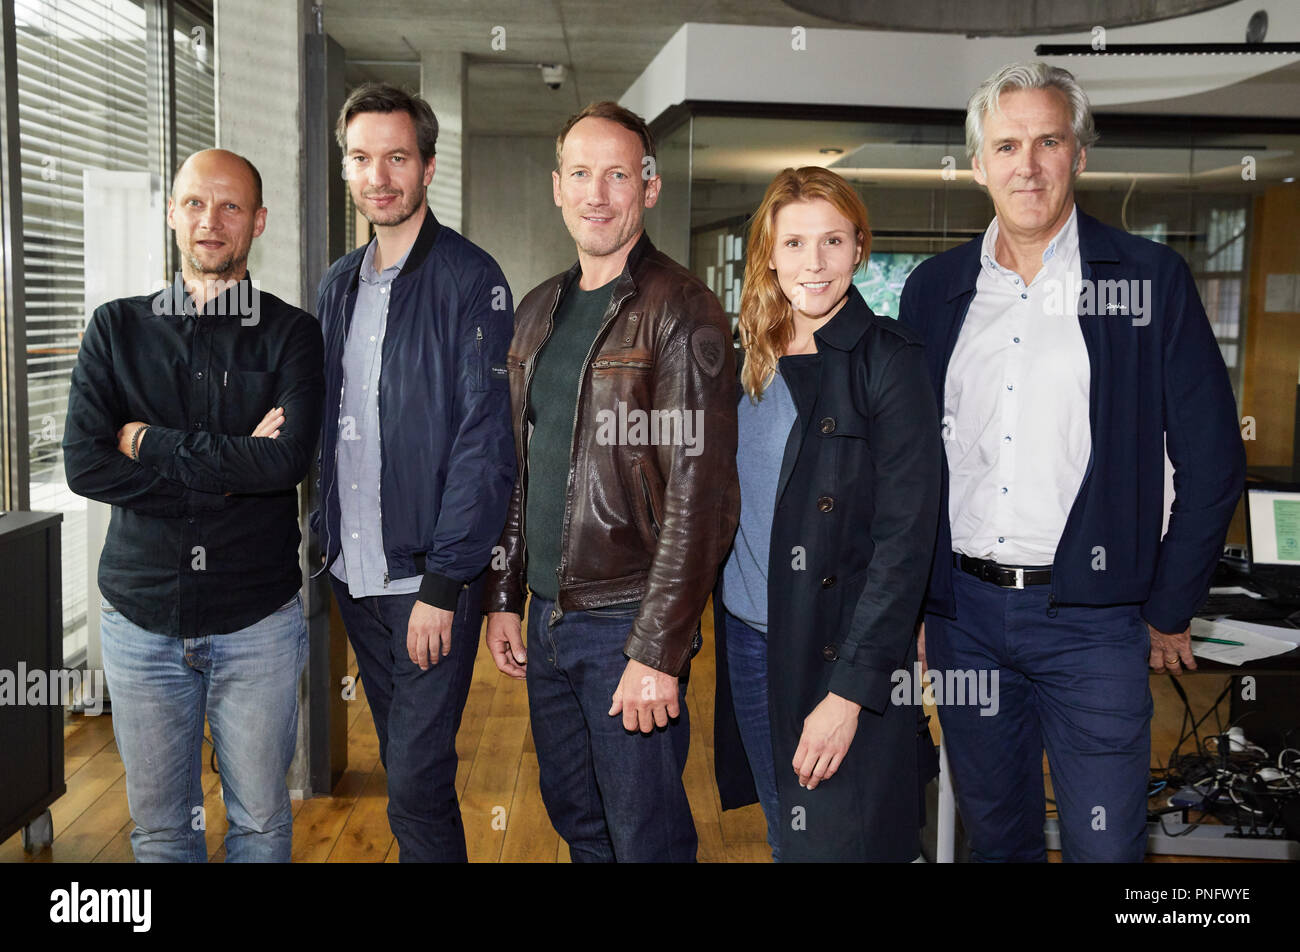 21 September 2018, Hamburg: Bjoern Vosgerau (left to right), producer, Stephan Rick, director, Wotan Wilke Moehring and Franziska Weisz, actors, and Donald Kraemer, NDR editor, standing on the set of the NDR crime series 'Tatort: Kollateralschaden' ('Crime scene: Collateral damages') during a photo shoot. Dar Erste will tentatively release the episode next year. Photo: Georg Wendt/dpa - Stock Image